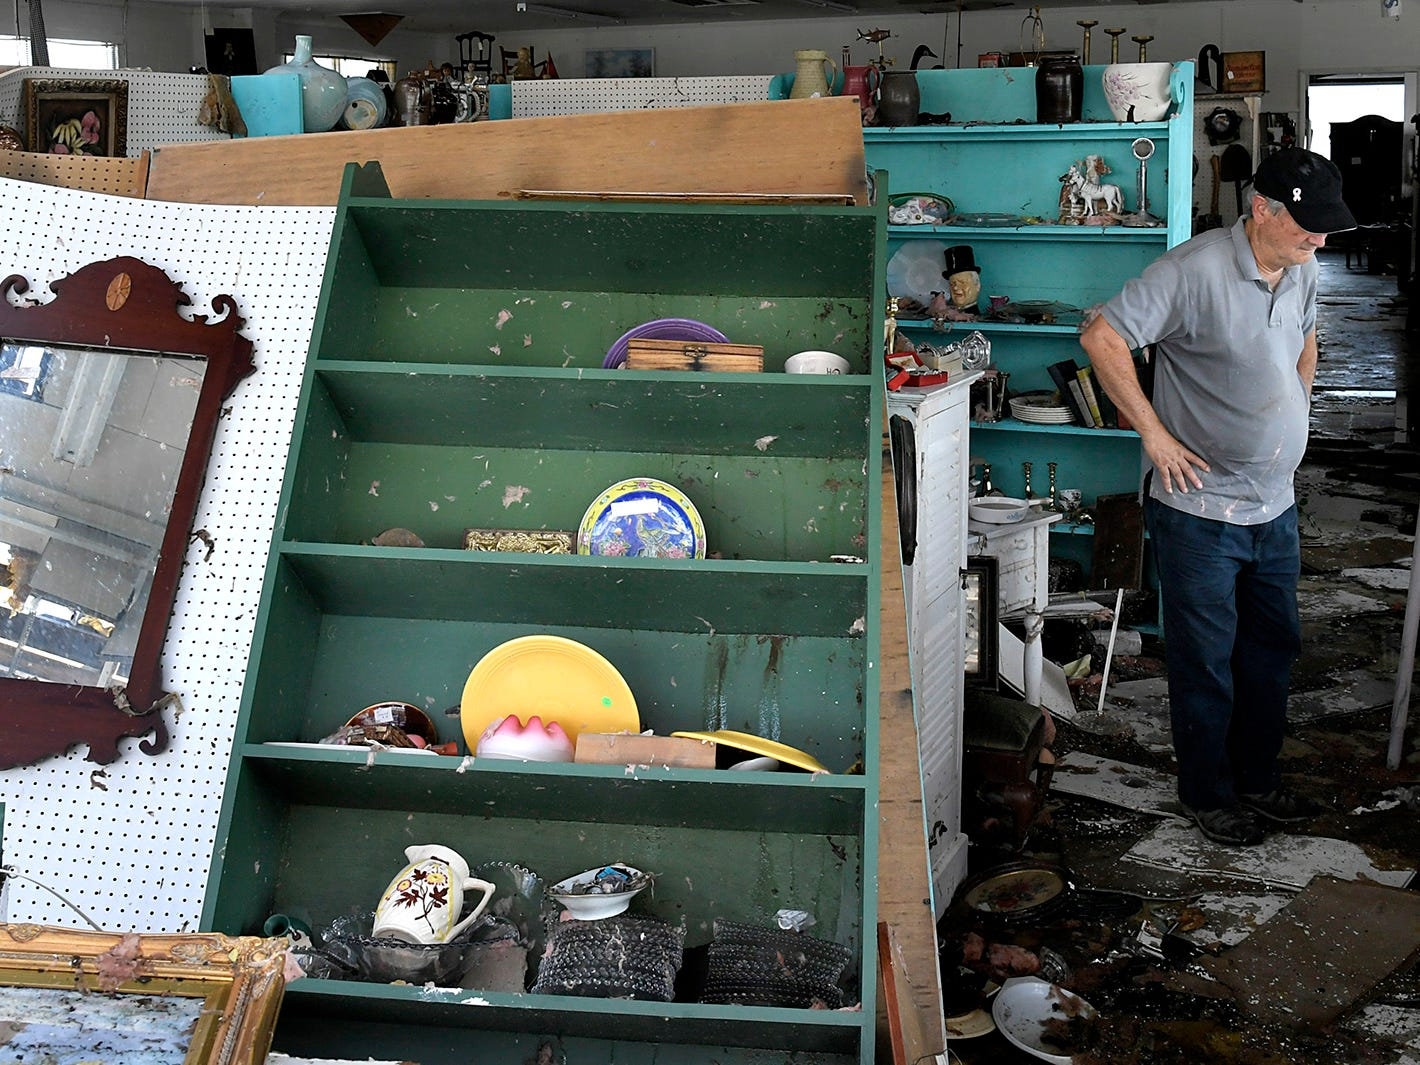 Don Thompson surveys the damage inside his Seaport Antiques store in Morehead City omn on Monday Sept. 17, 2018.  Tropical Storm Florence shattered the front windows of Seaport Antiques over the weekend, then sucked the roof off half of the store and dropped it in the parking lot next door.